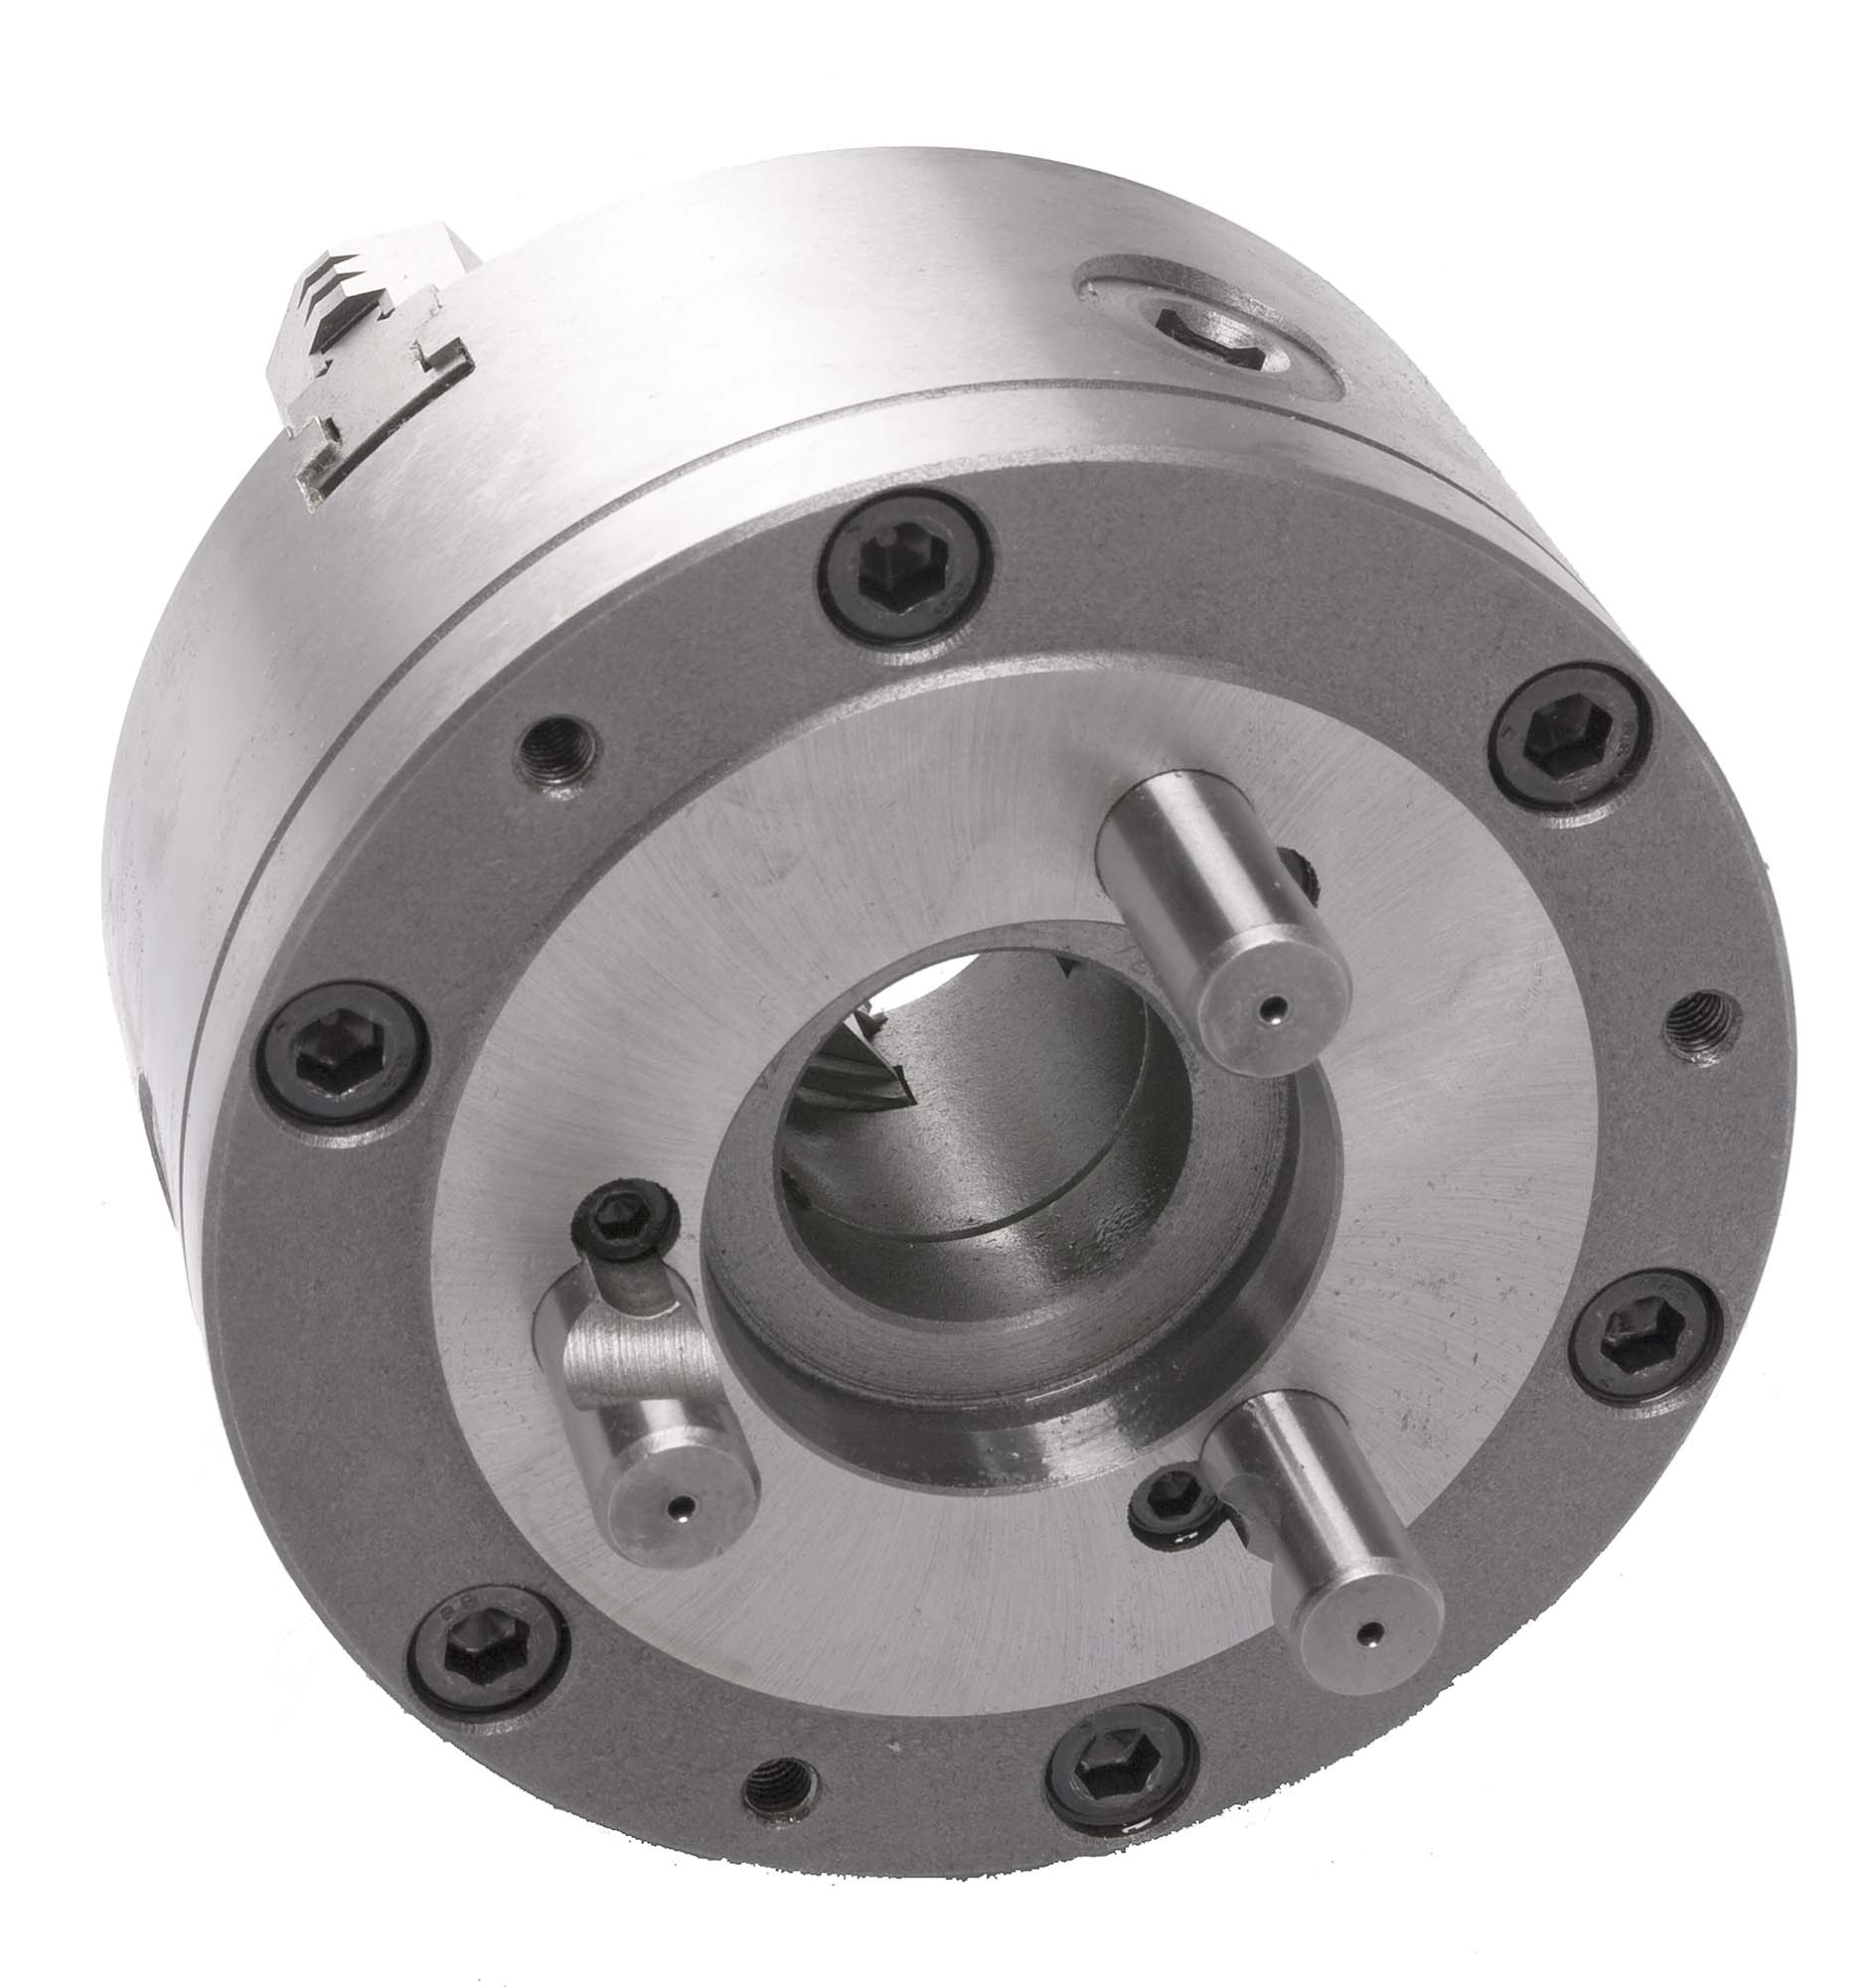 "Bison 7-803-1038 10"" D-1-8 3 Jaw Universal Lathe Chuck with two-piece jaws"